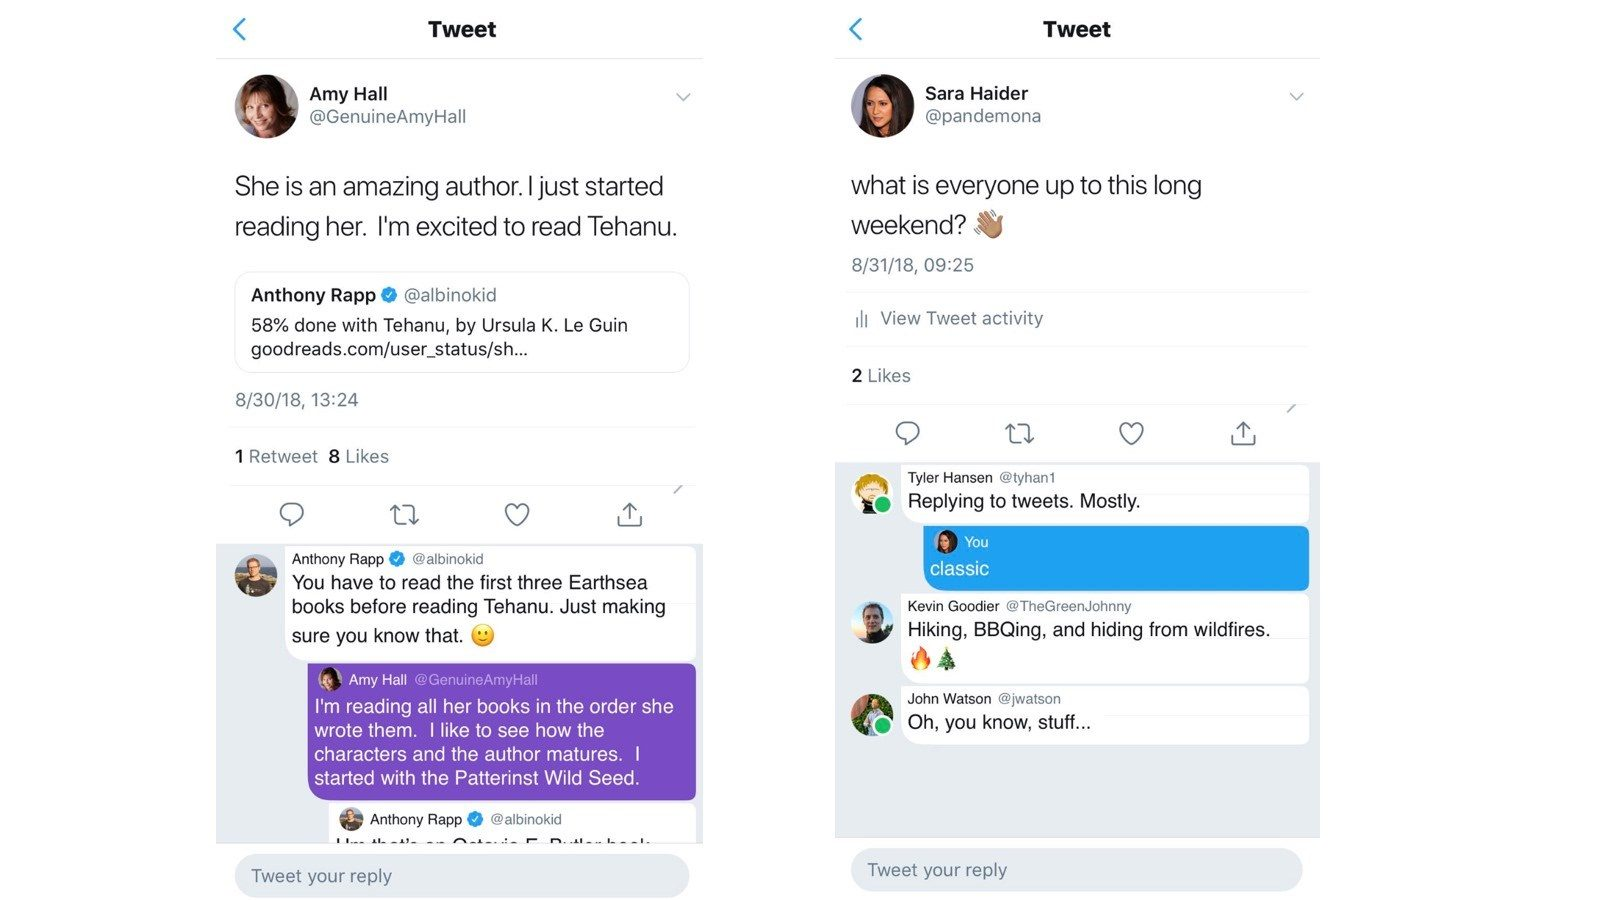 Twitter launches public beta test of new threaded reply interface